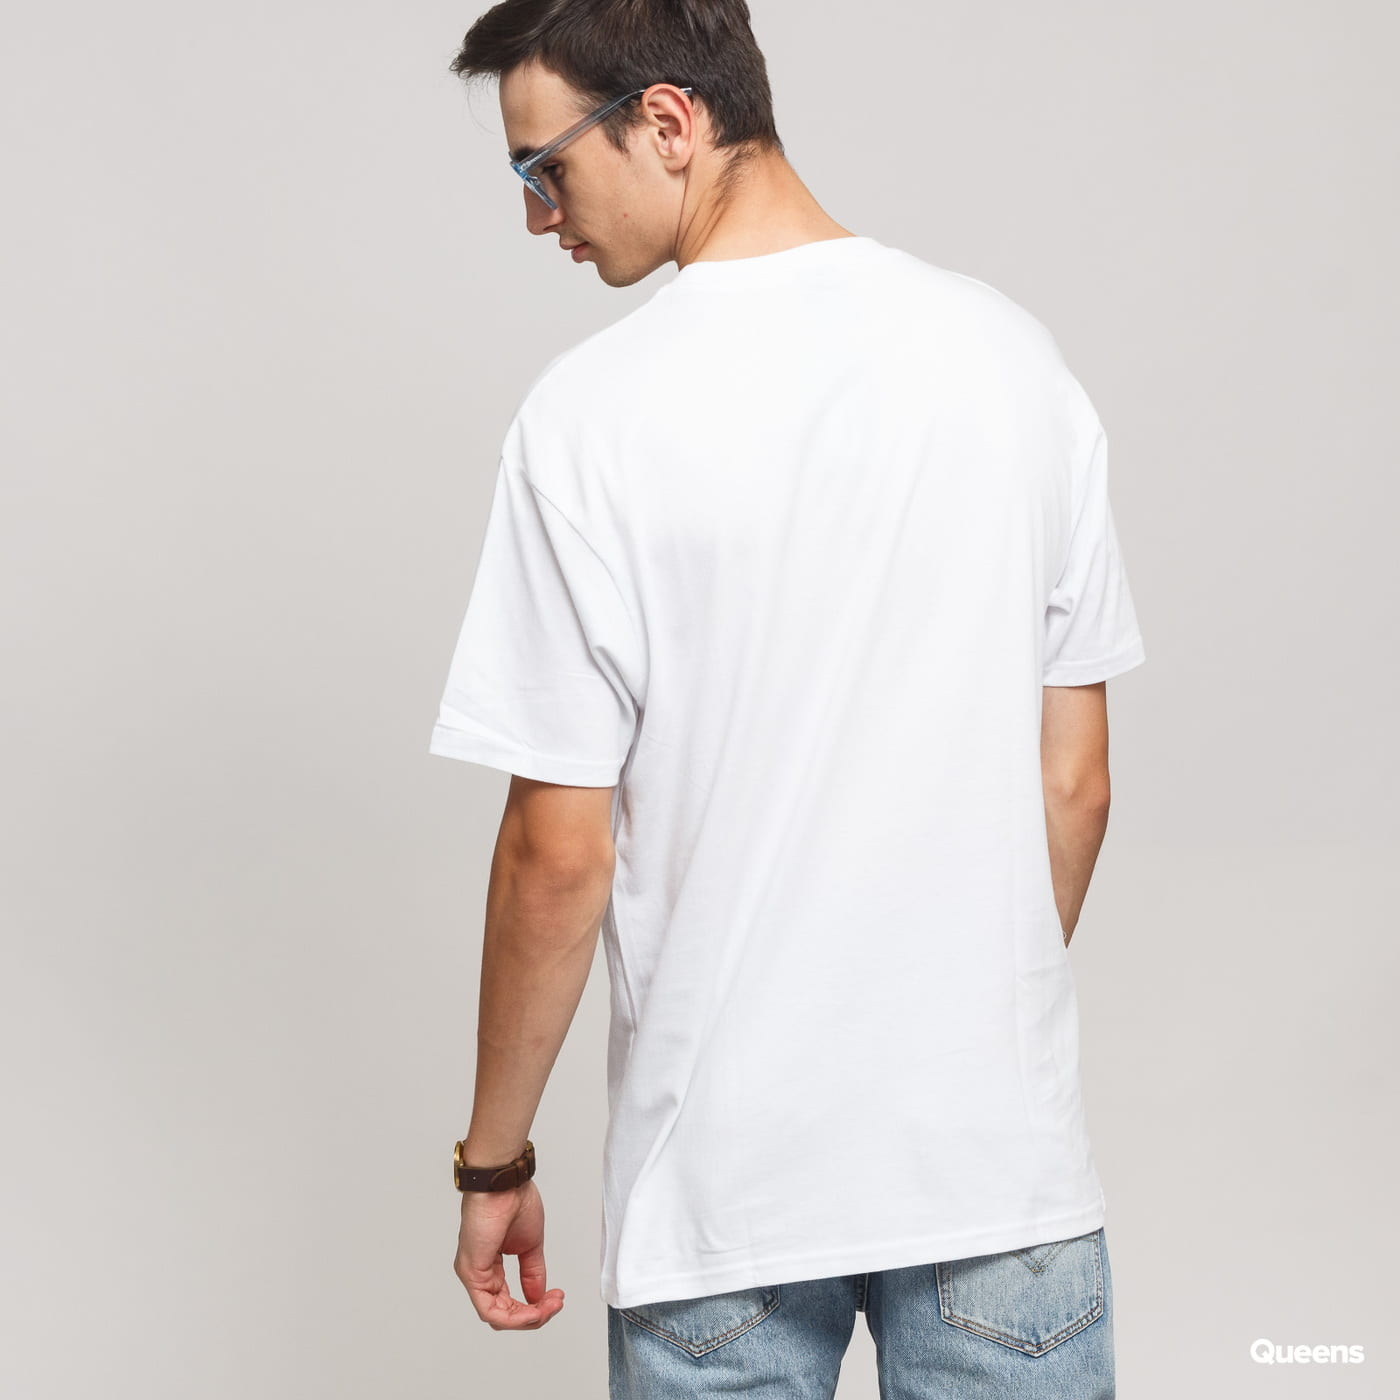 INDEPENDENT Truck Co. Tee white